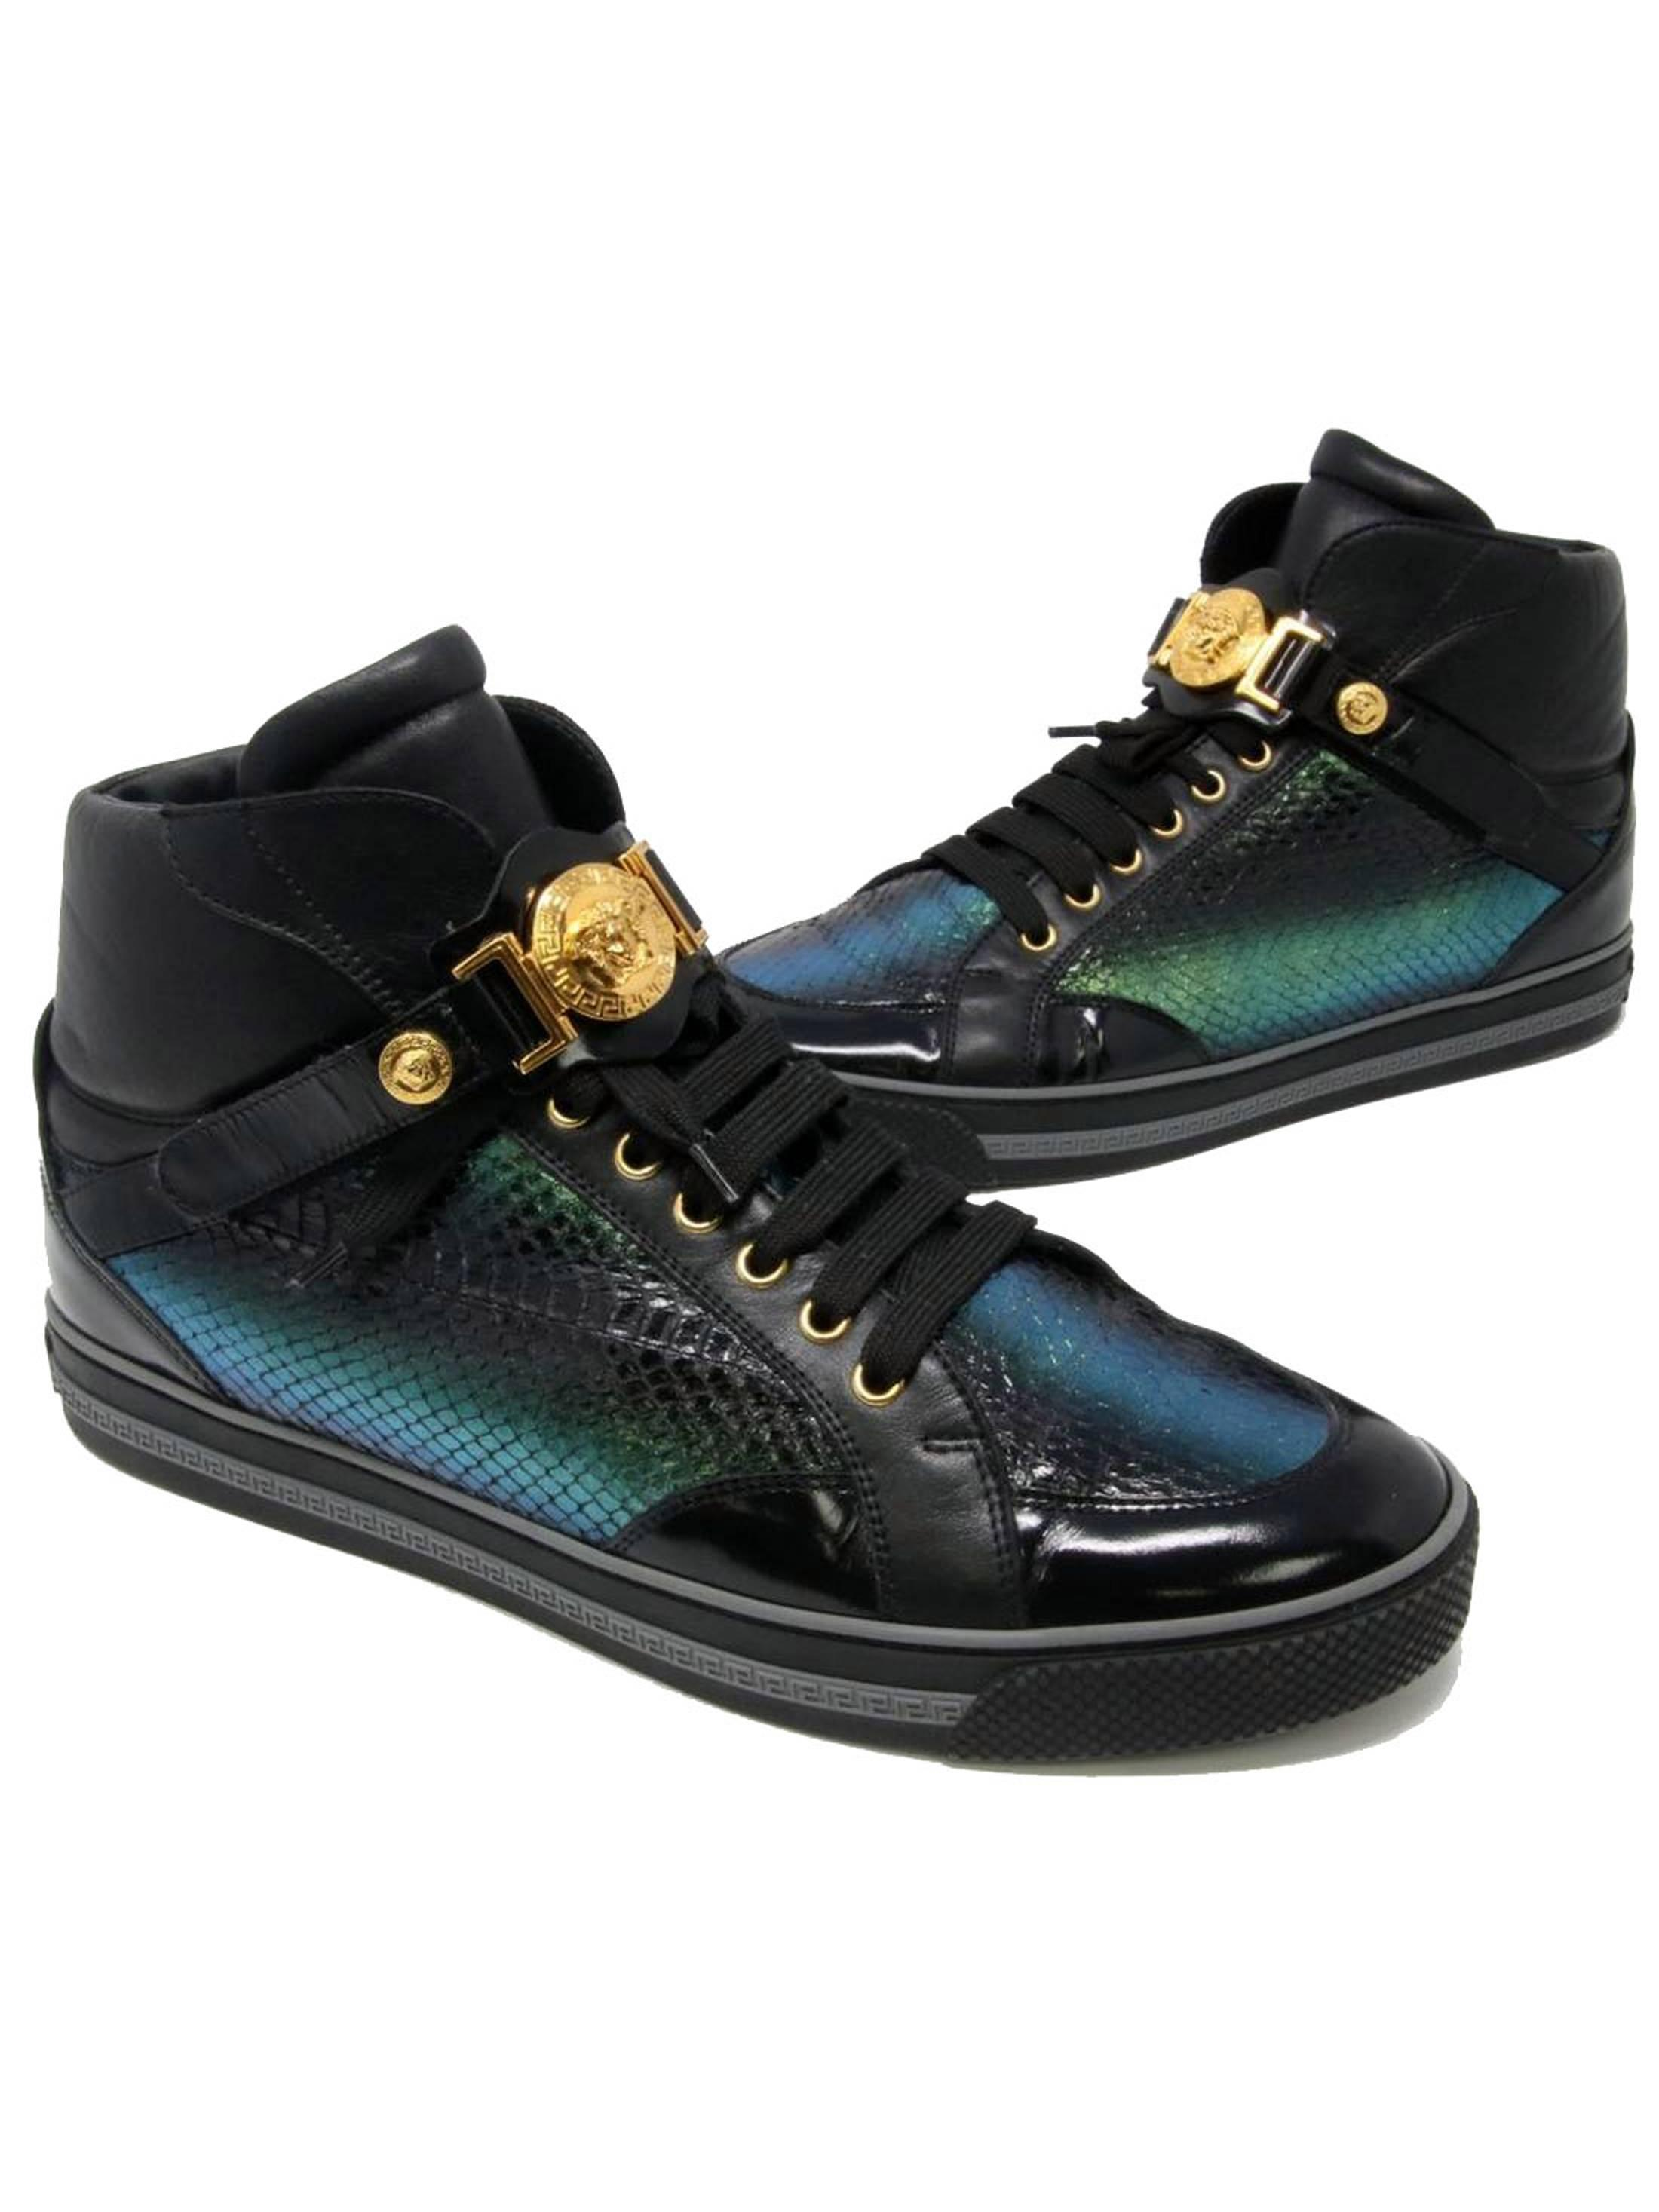 prada shoes latest collection versace